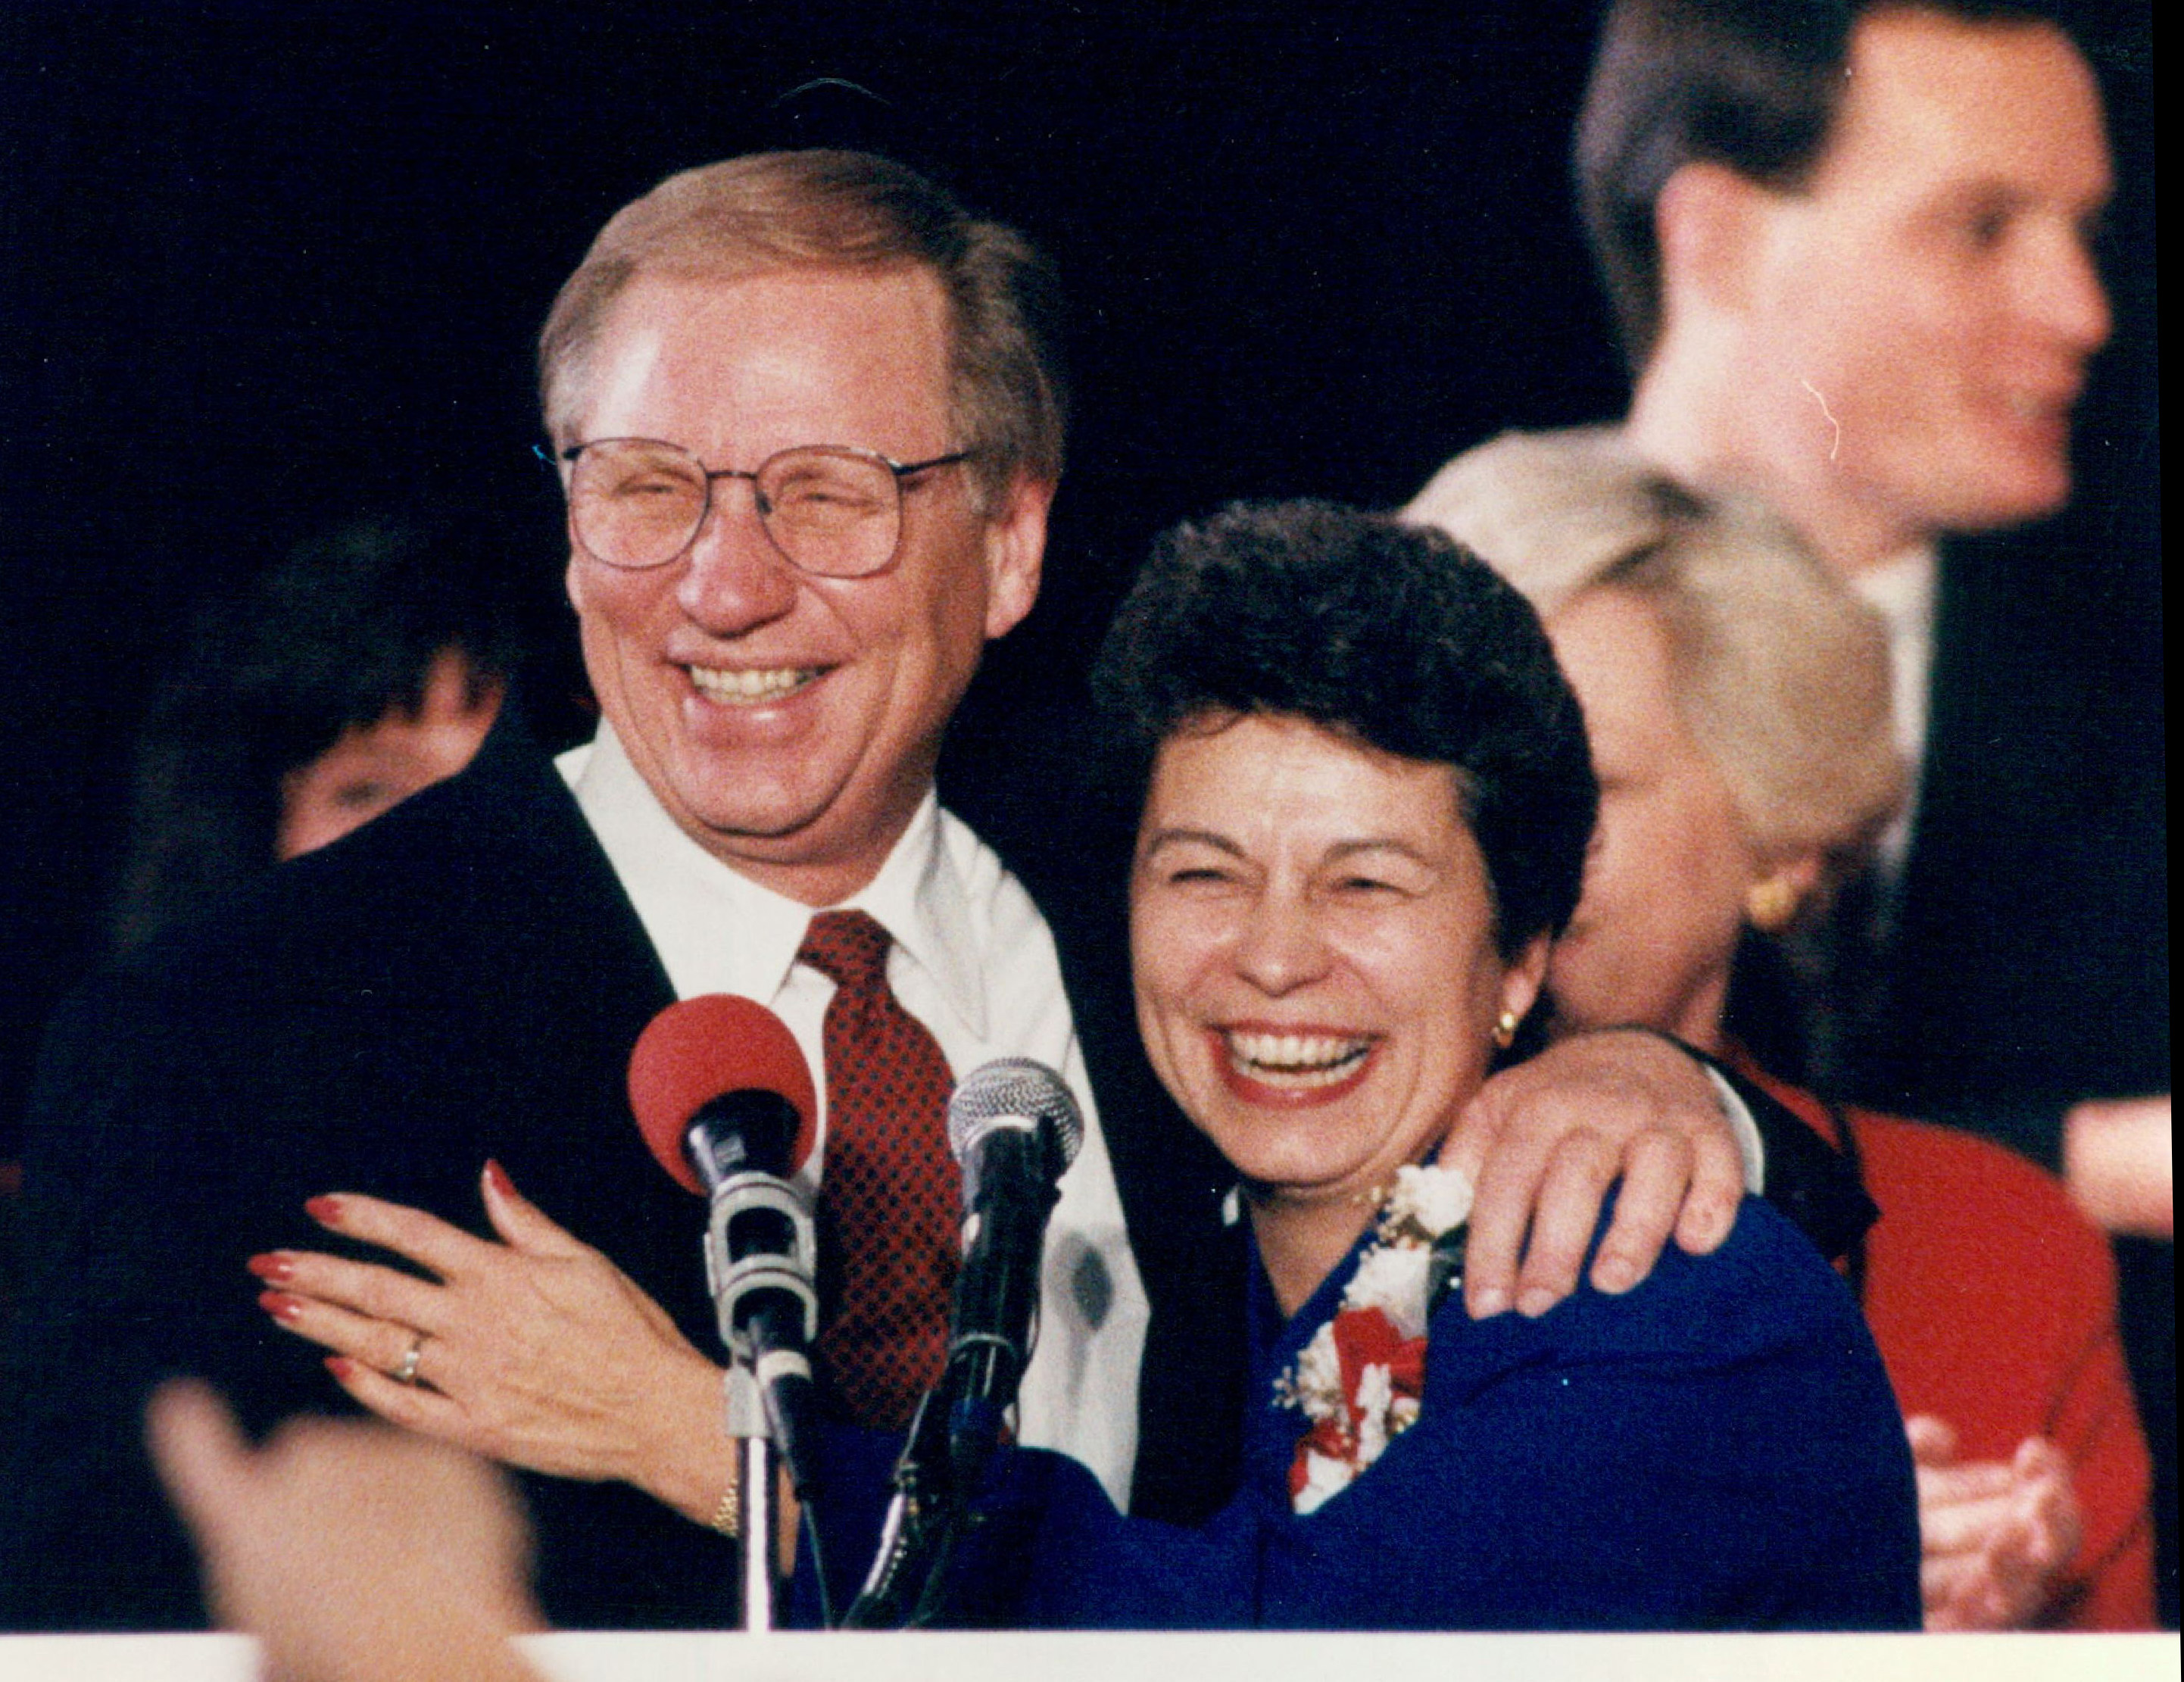 Nov. 9, 1994: Arne Carlson celebrated with Lt. Gov. Joanne Benson as his reelection was confirmed.